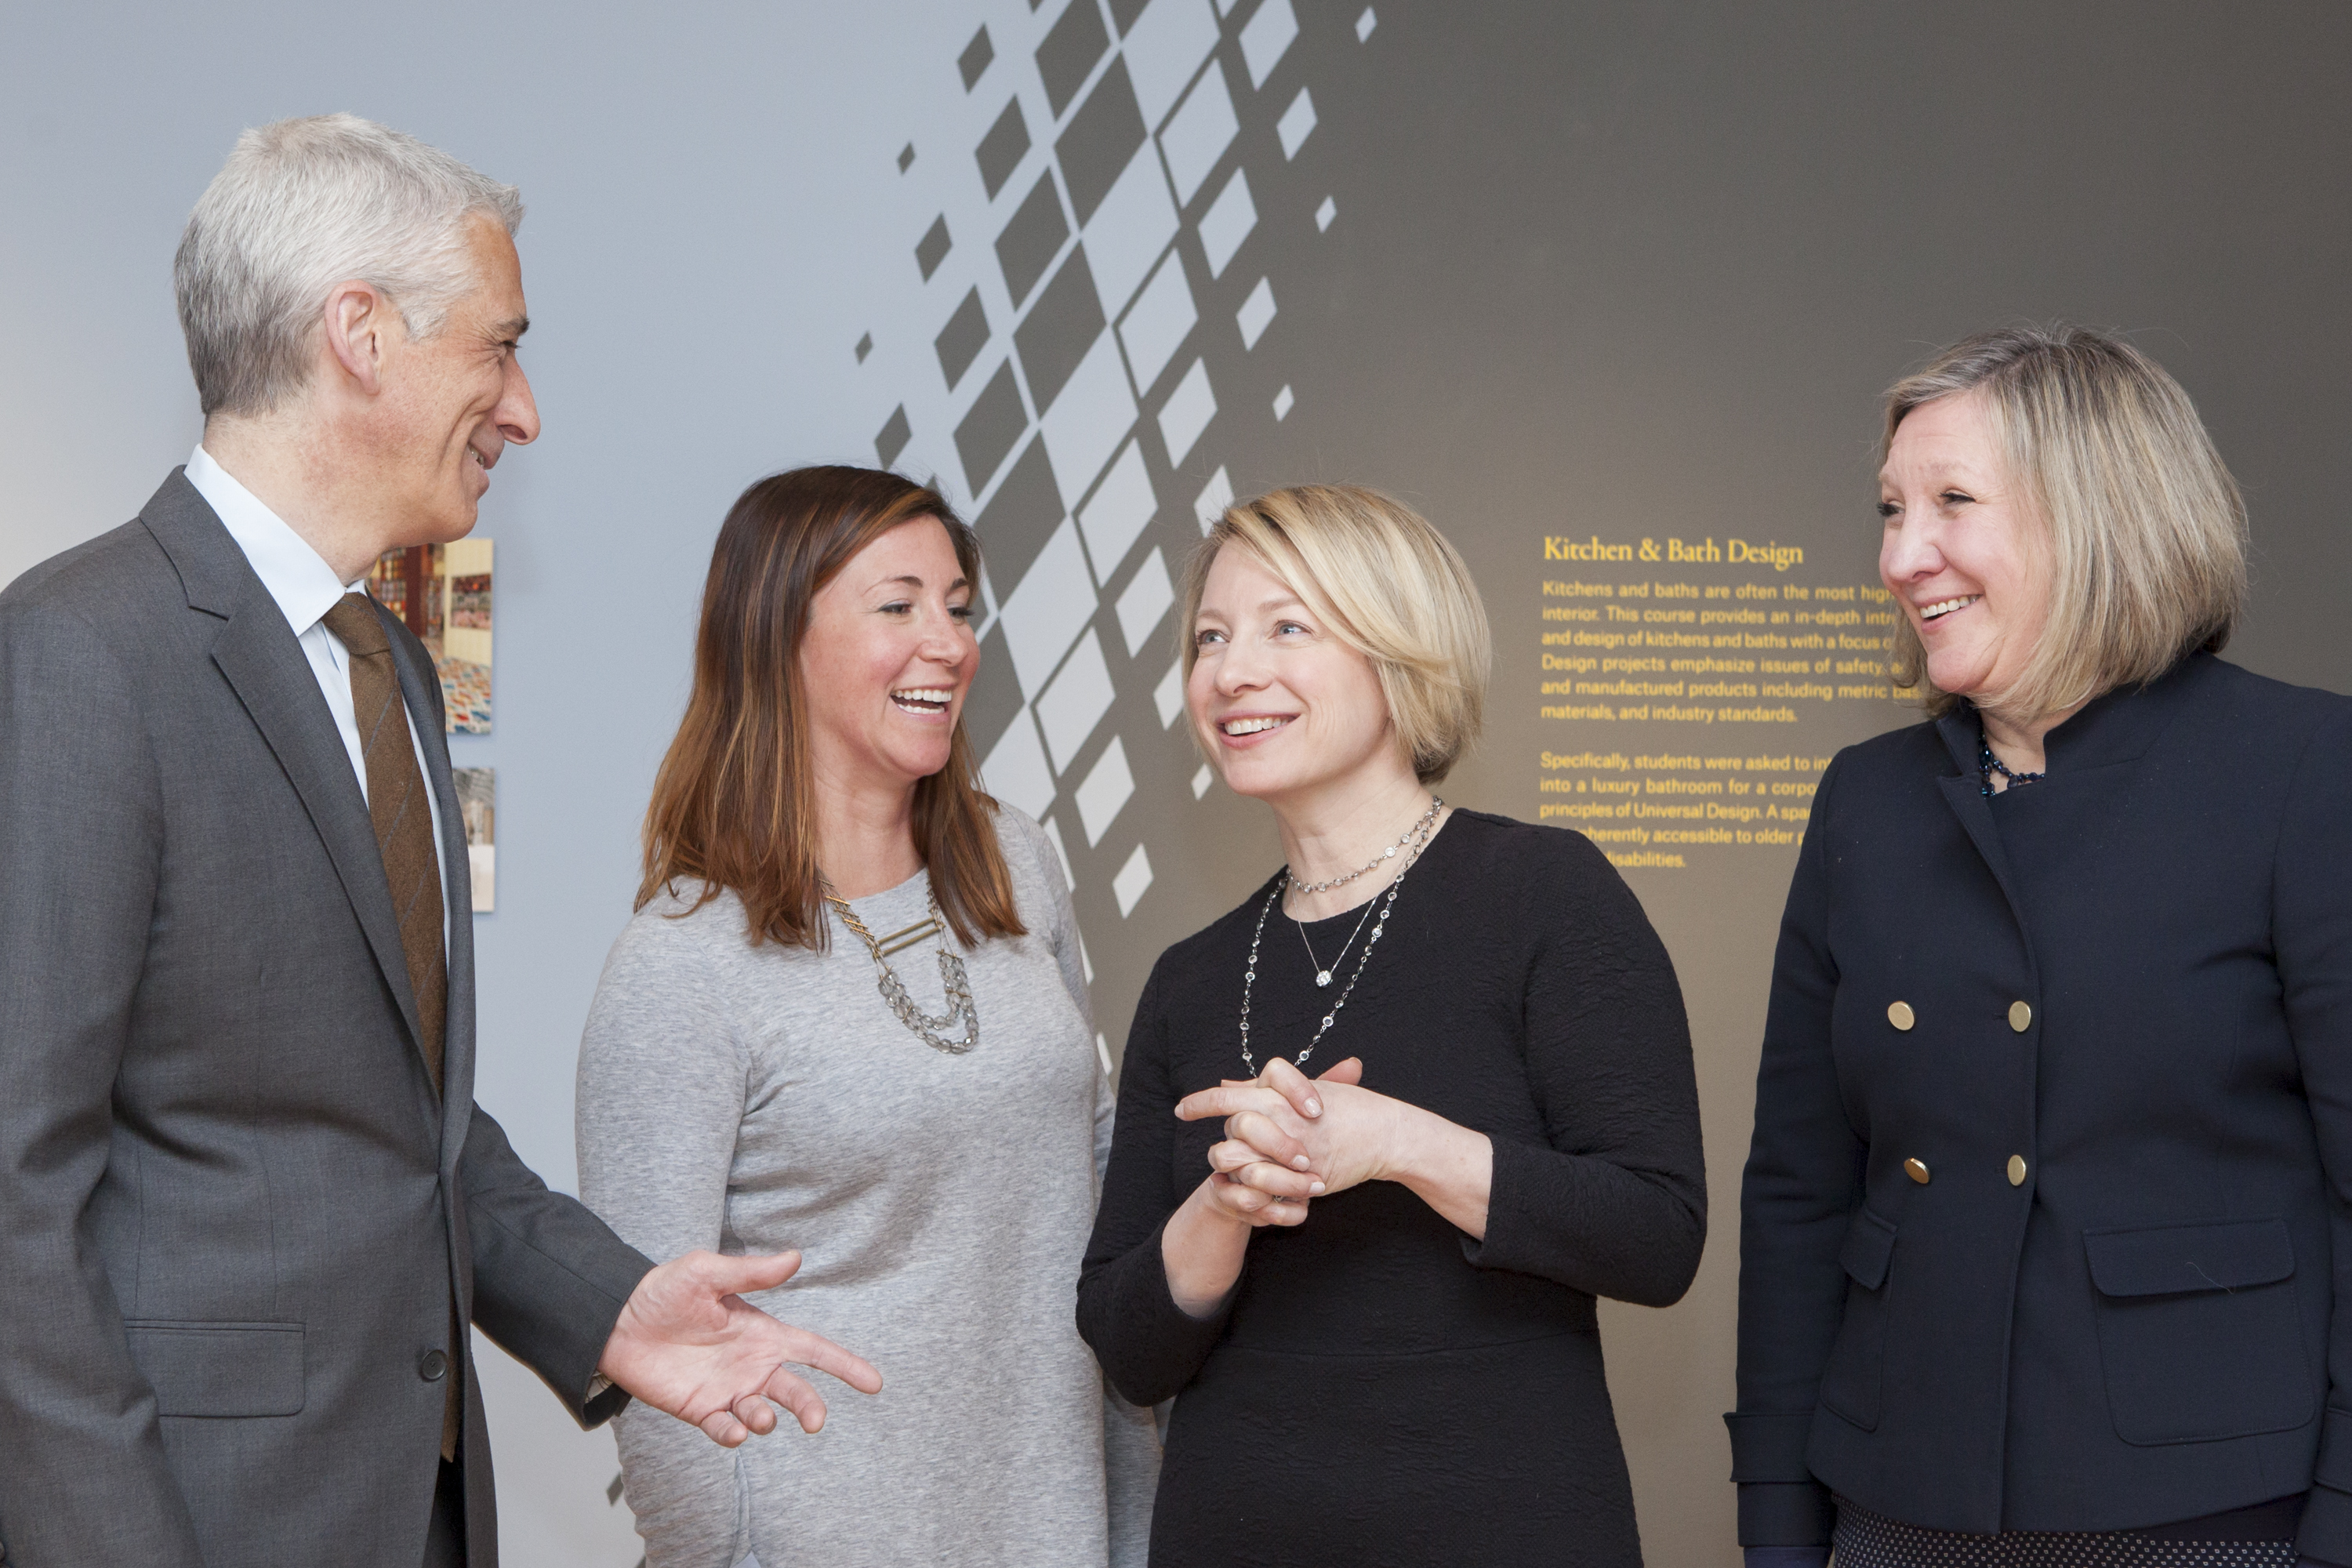 Paul Murray, Farrow & Ball northeast regional sales manager; Jessica Ritchie, Farrow & Ball vice president of northeast sales; Christine Haney, Farrow & Ball North America designer marketing manager; Lynn Galvin, Farrow & Ball northeast design and architecture manager